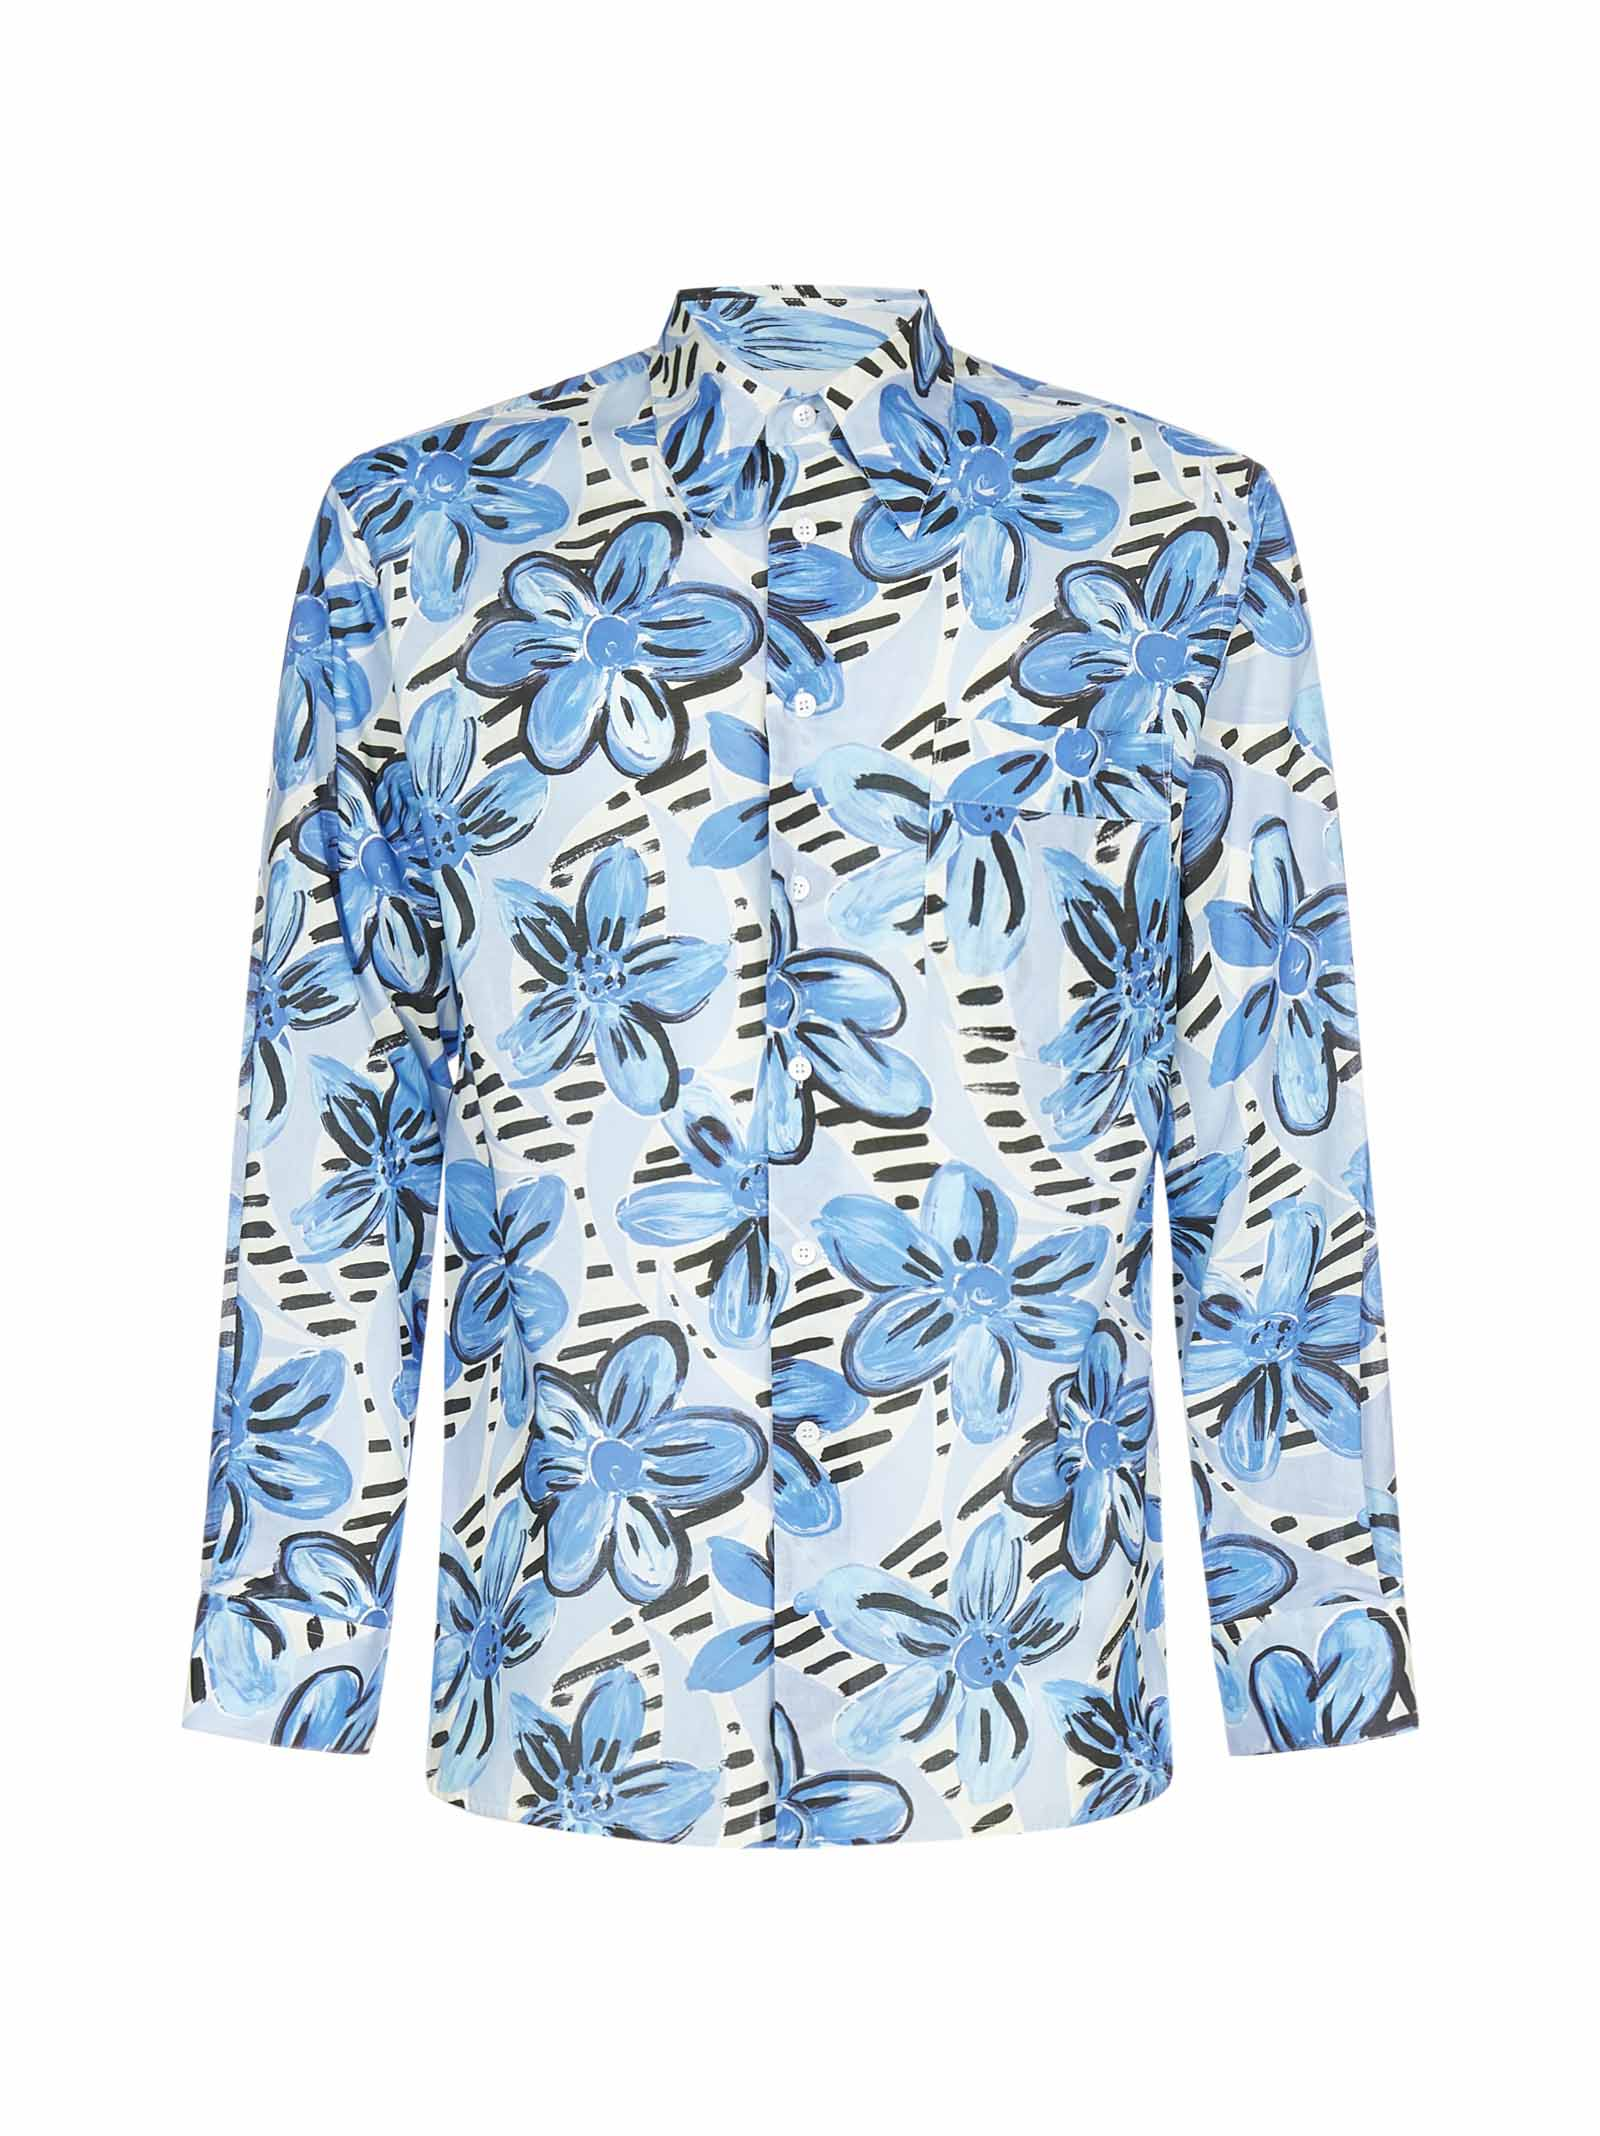 Marni Painted Flowers Print Shirt In Blue